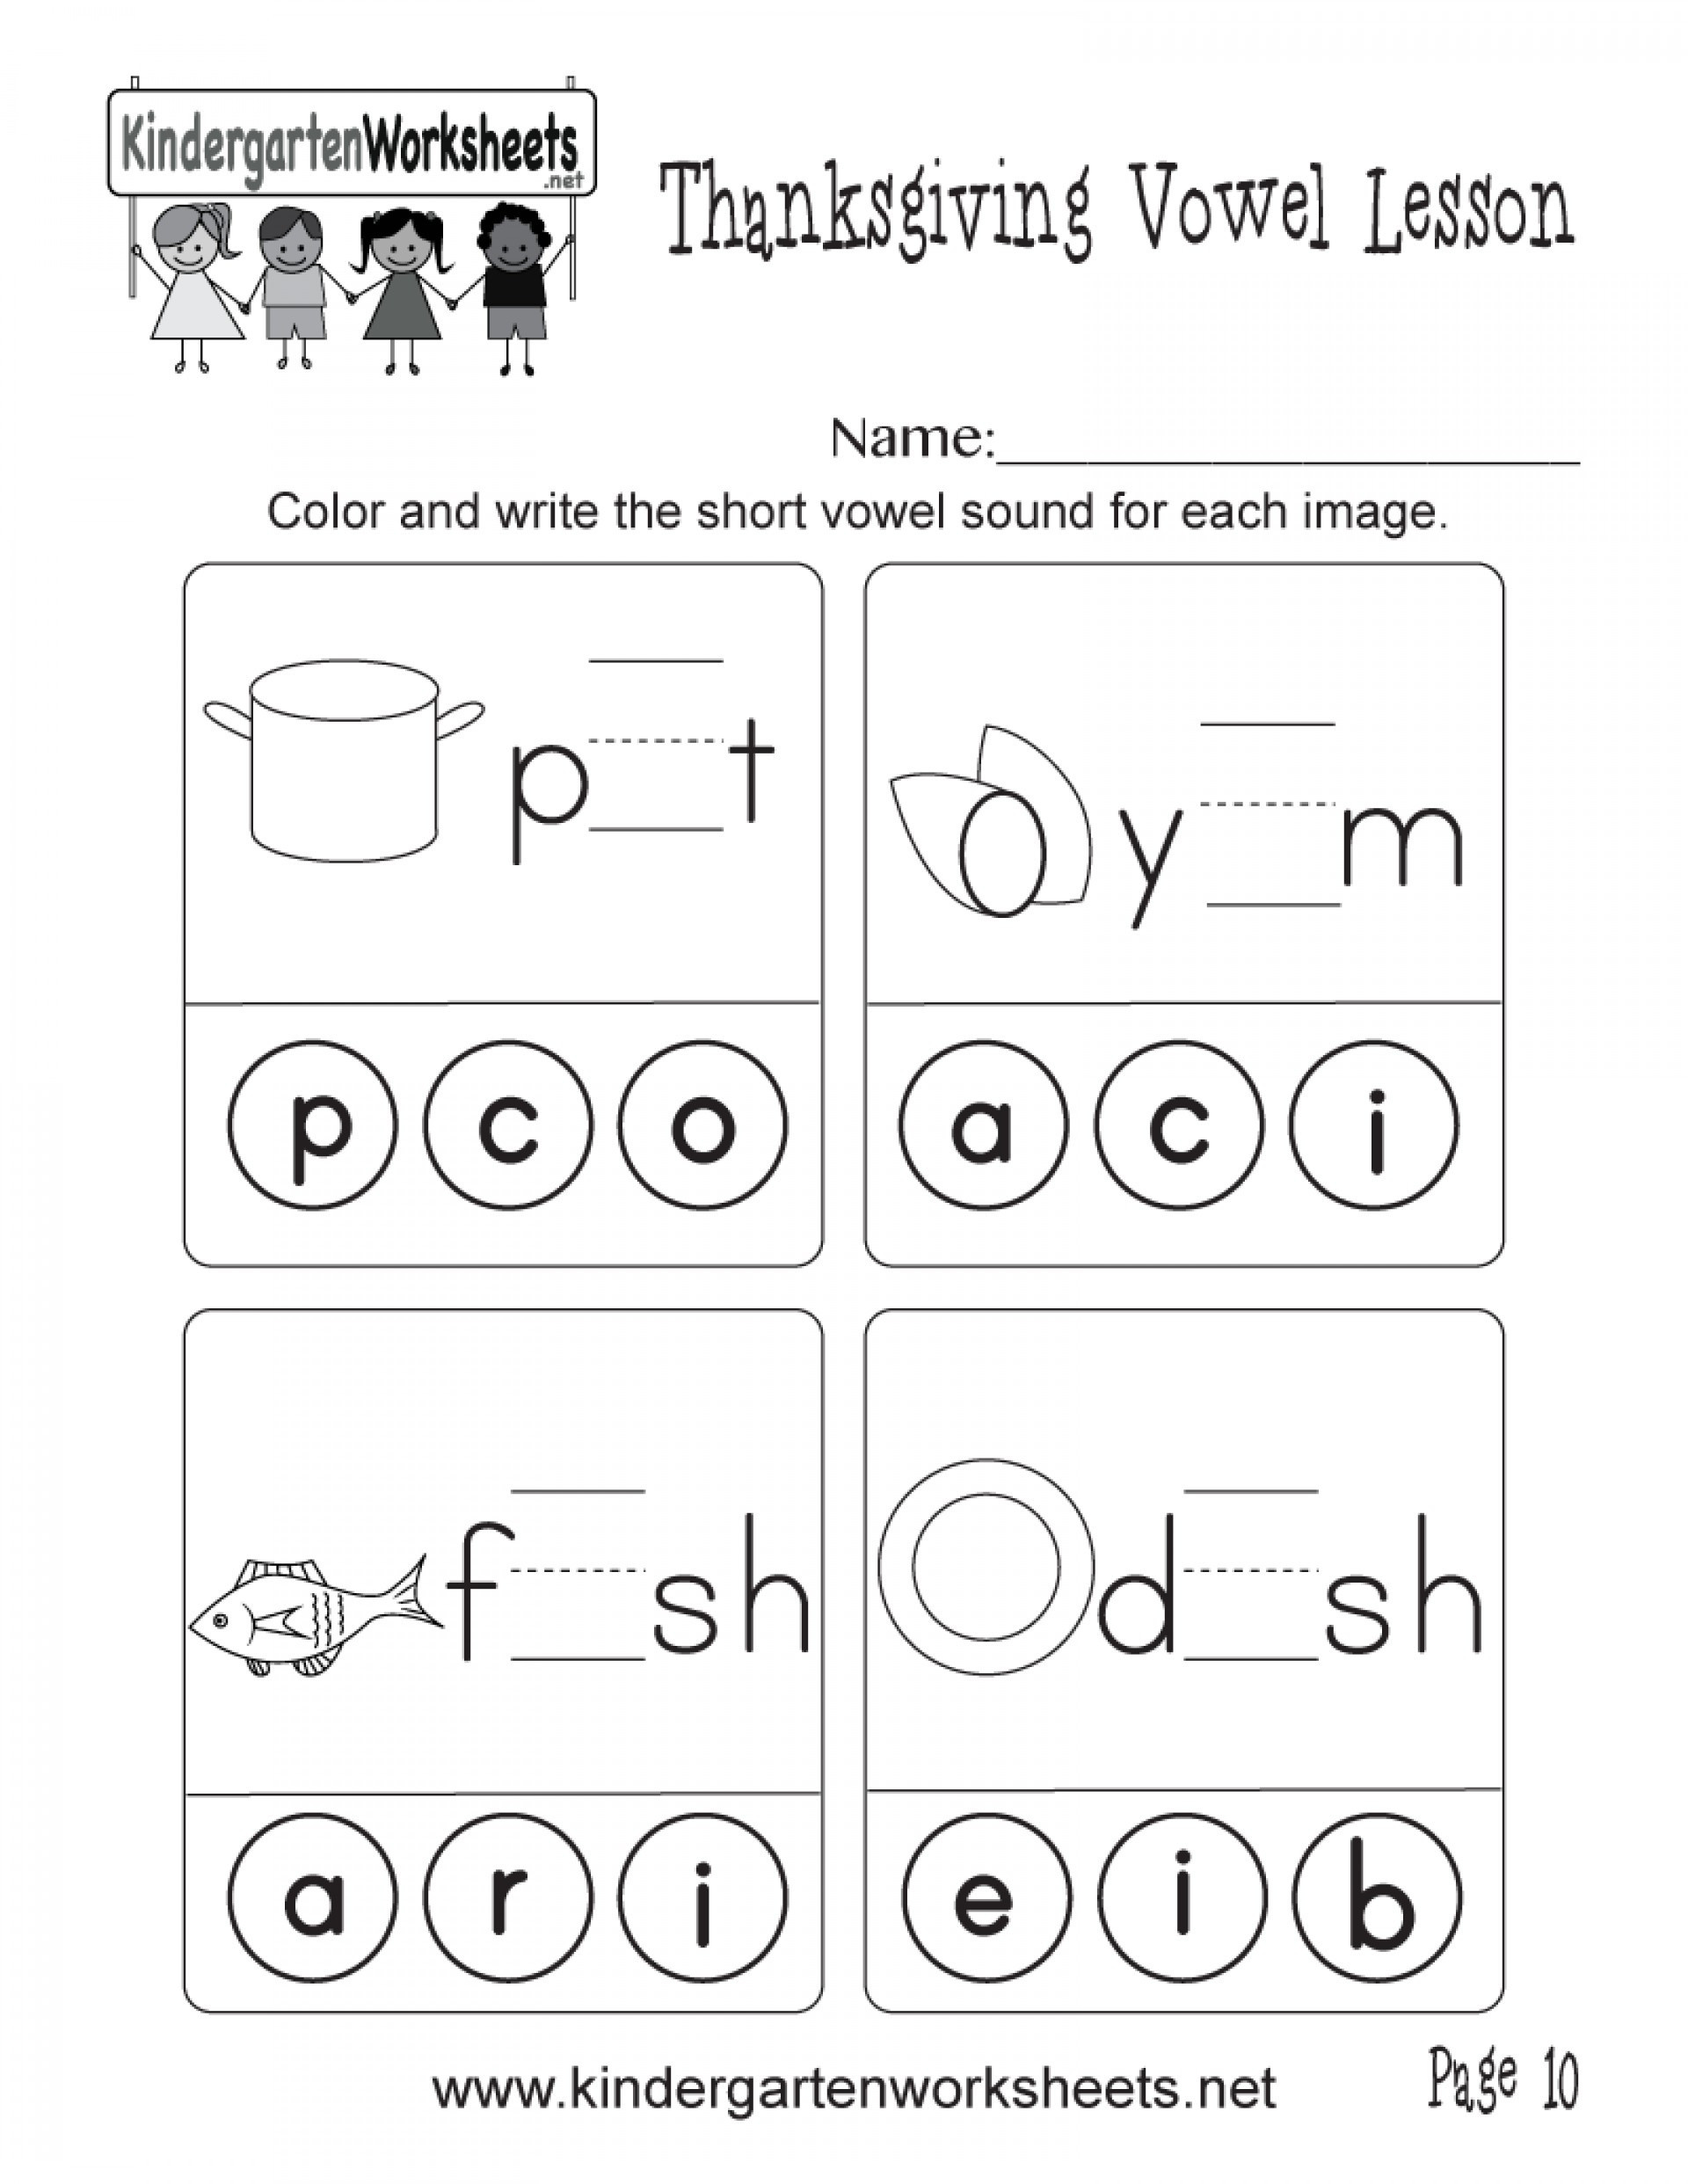 Vowel Worksheets for Kindergarten 6 Long and Short Vowel sounds Worksheets – Learning Worksheets